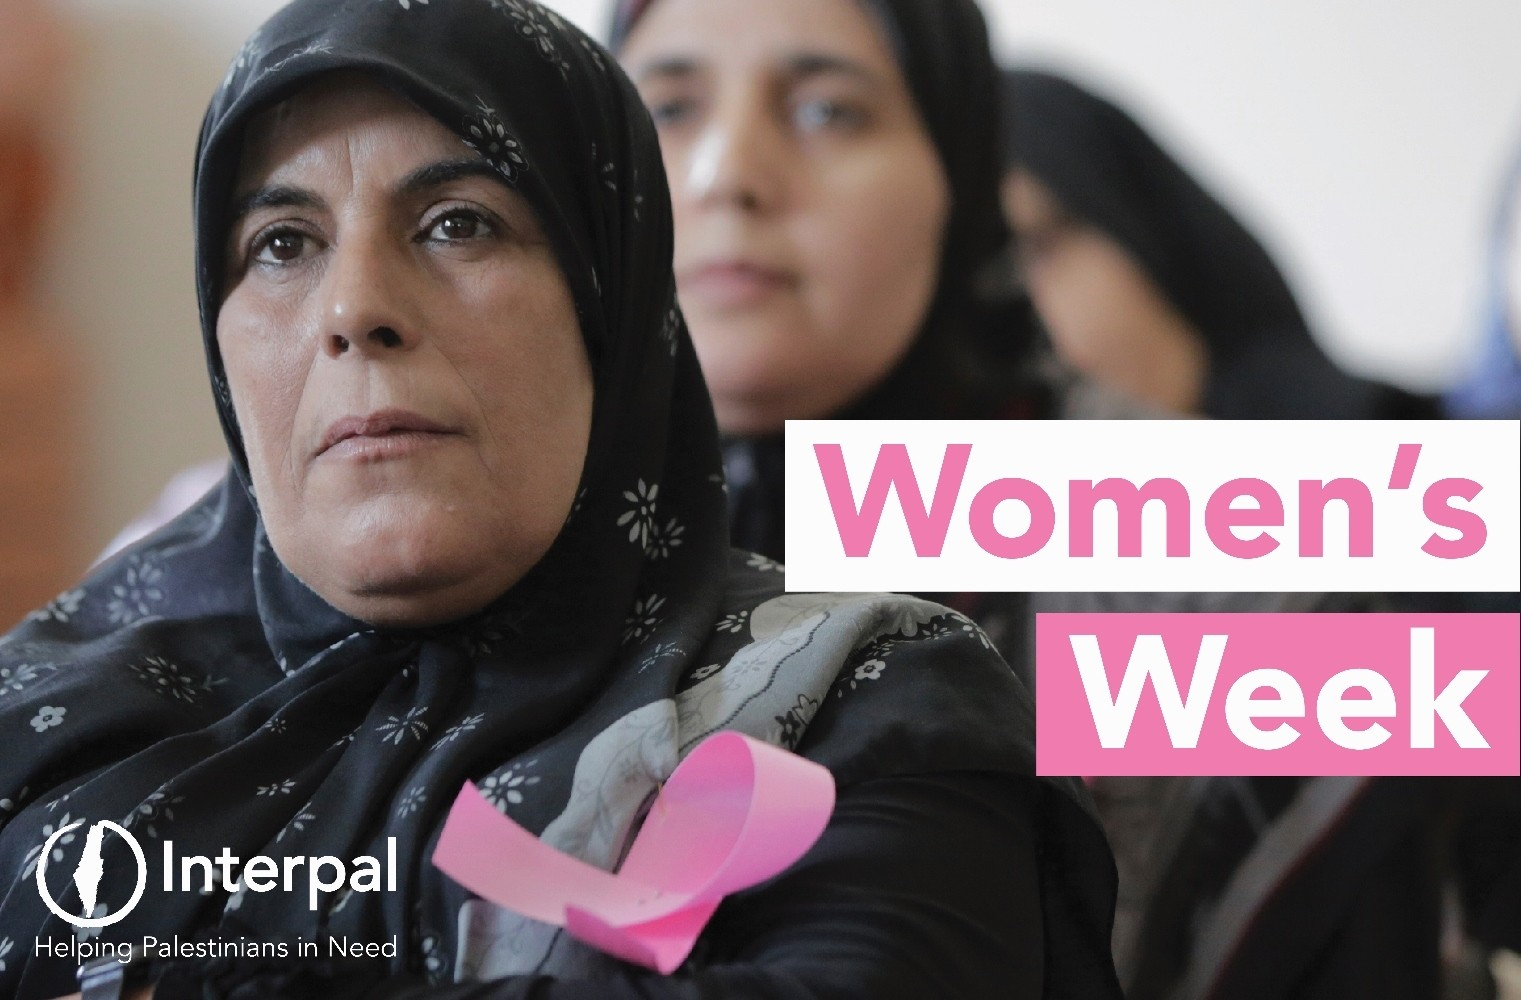 Life as a refugee: A woman's perspective